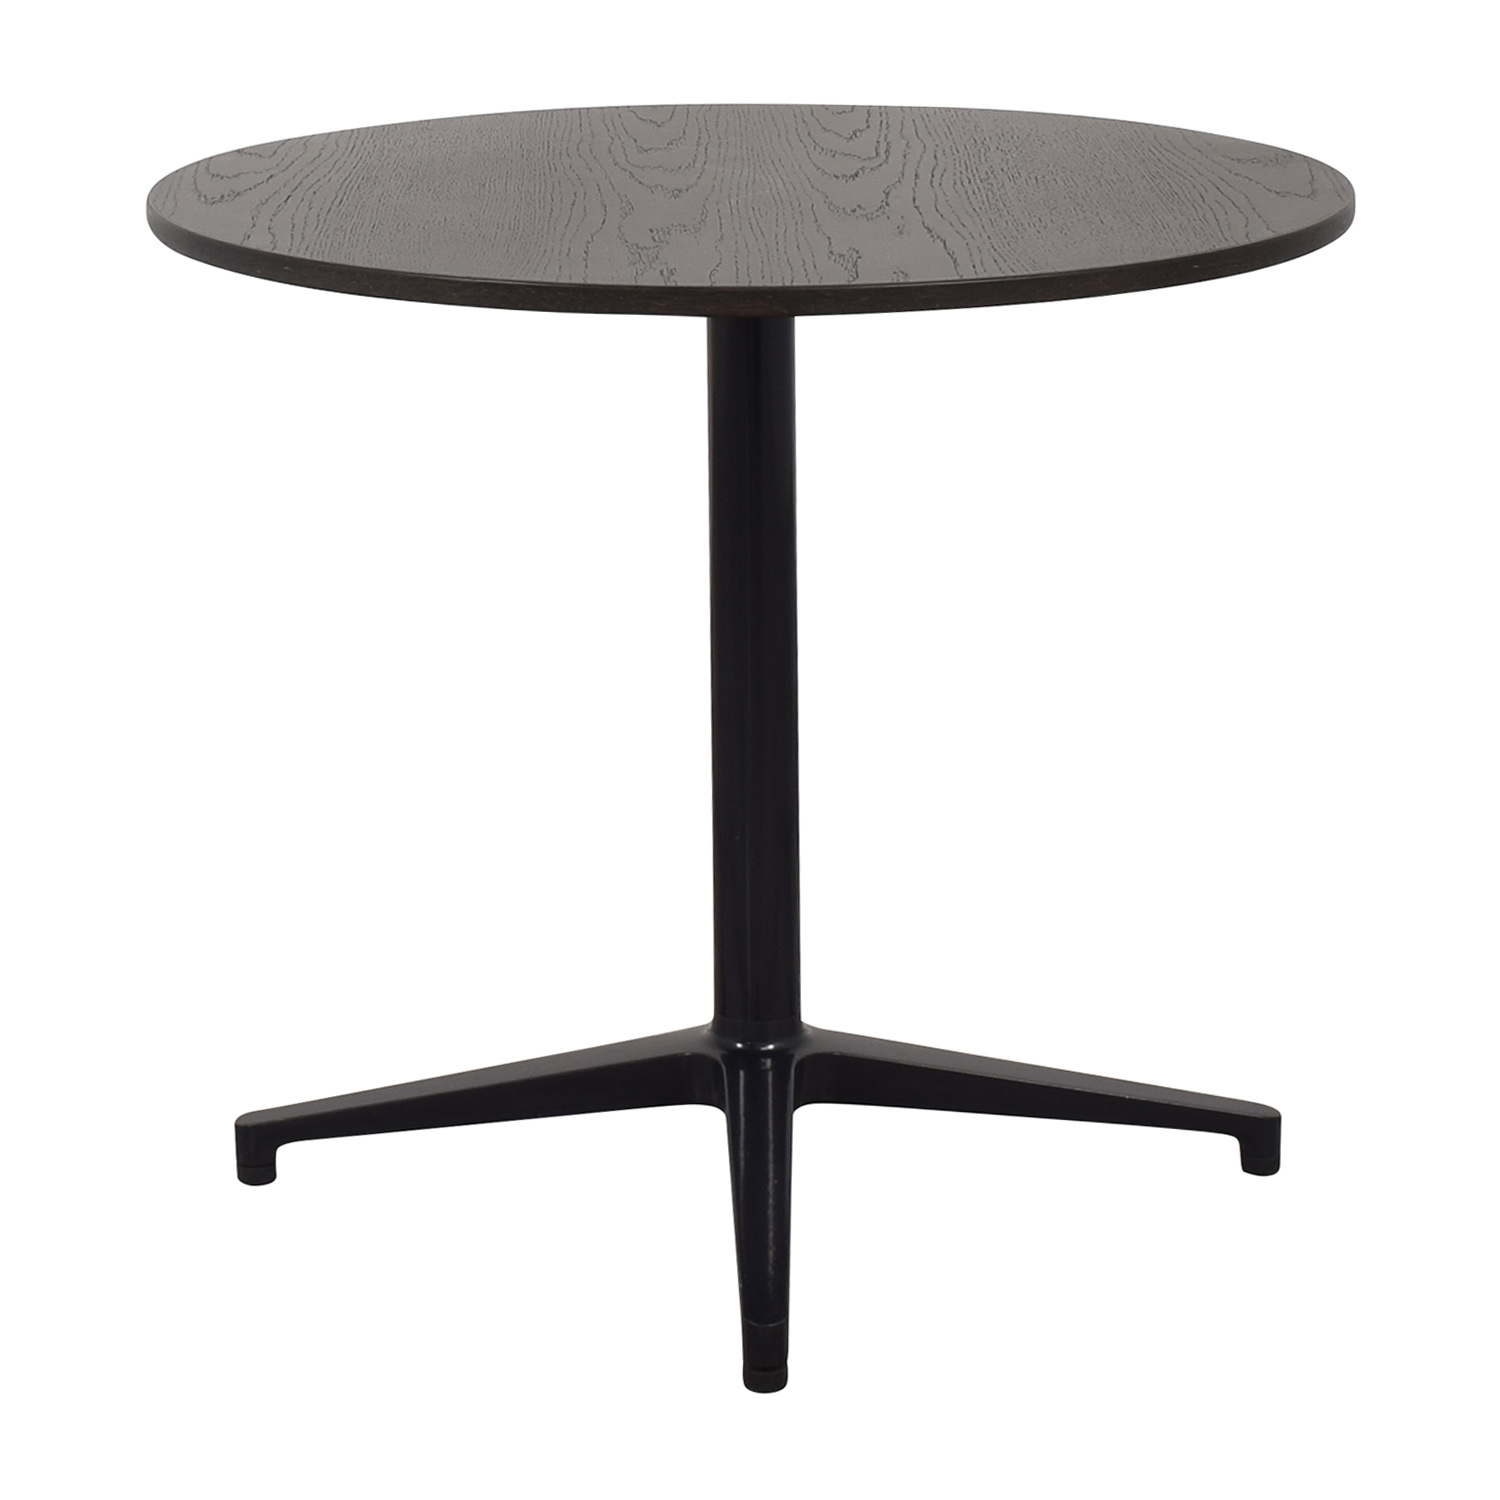 Vitra Vitra Bistro Table second hand